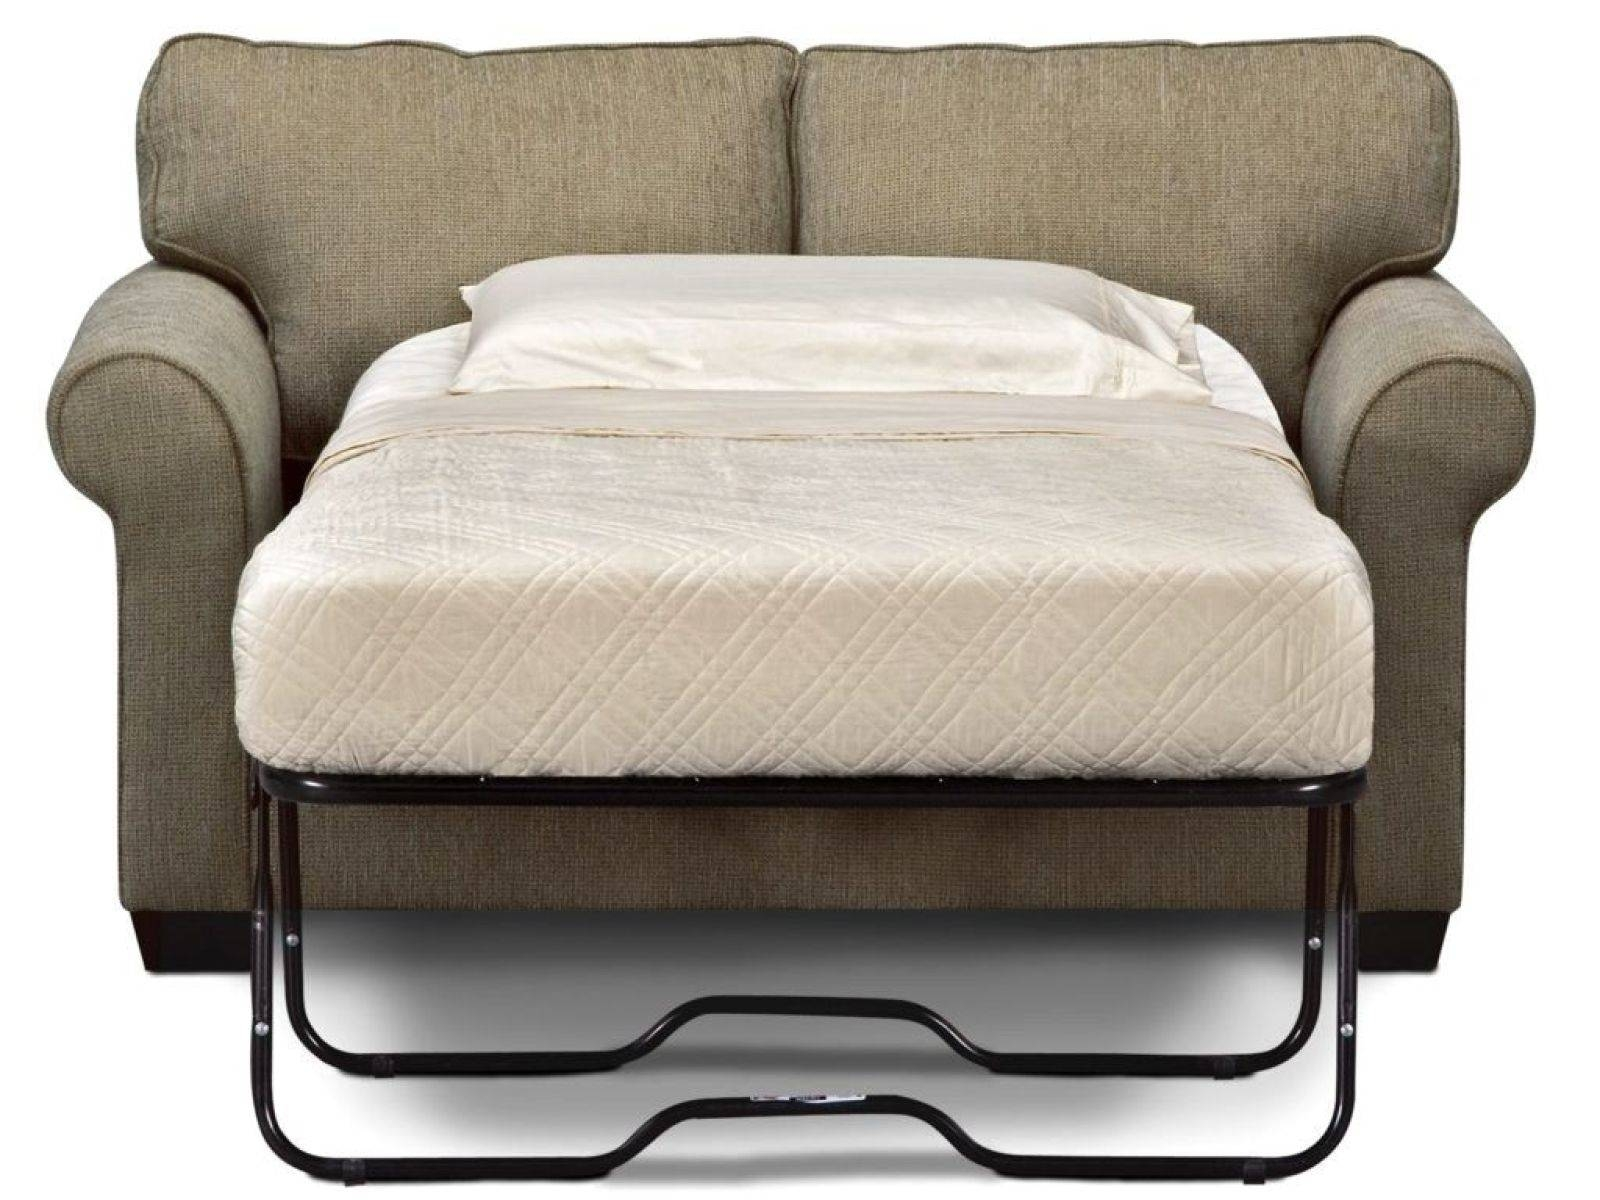 ☆▻ Sofa : 24 Ikea Has One Of The Best Kind Of Other Is Small for Sofa Bed Sleepers (Image 30 of 30)